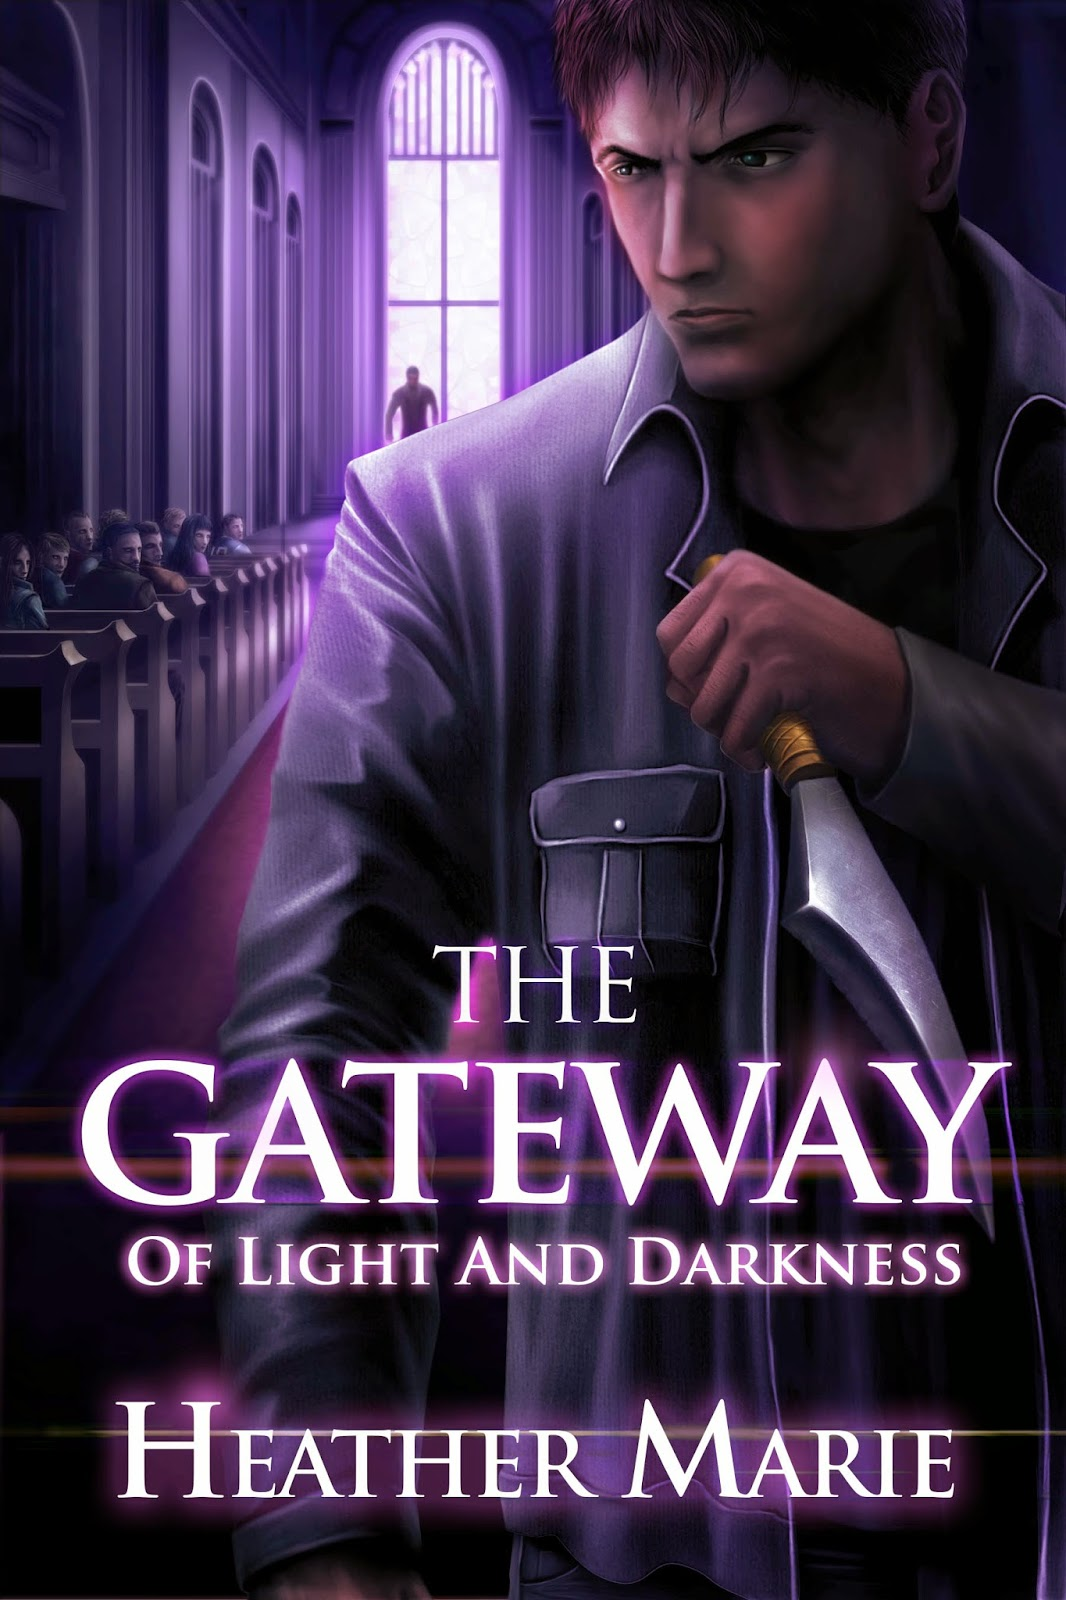 https://www.goodreads.com/book/show/25077874-the-gateway-of-light-and-darkness